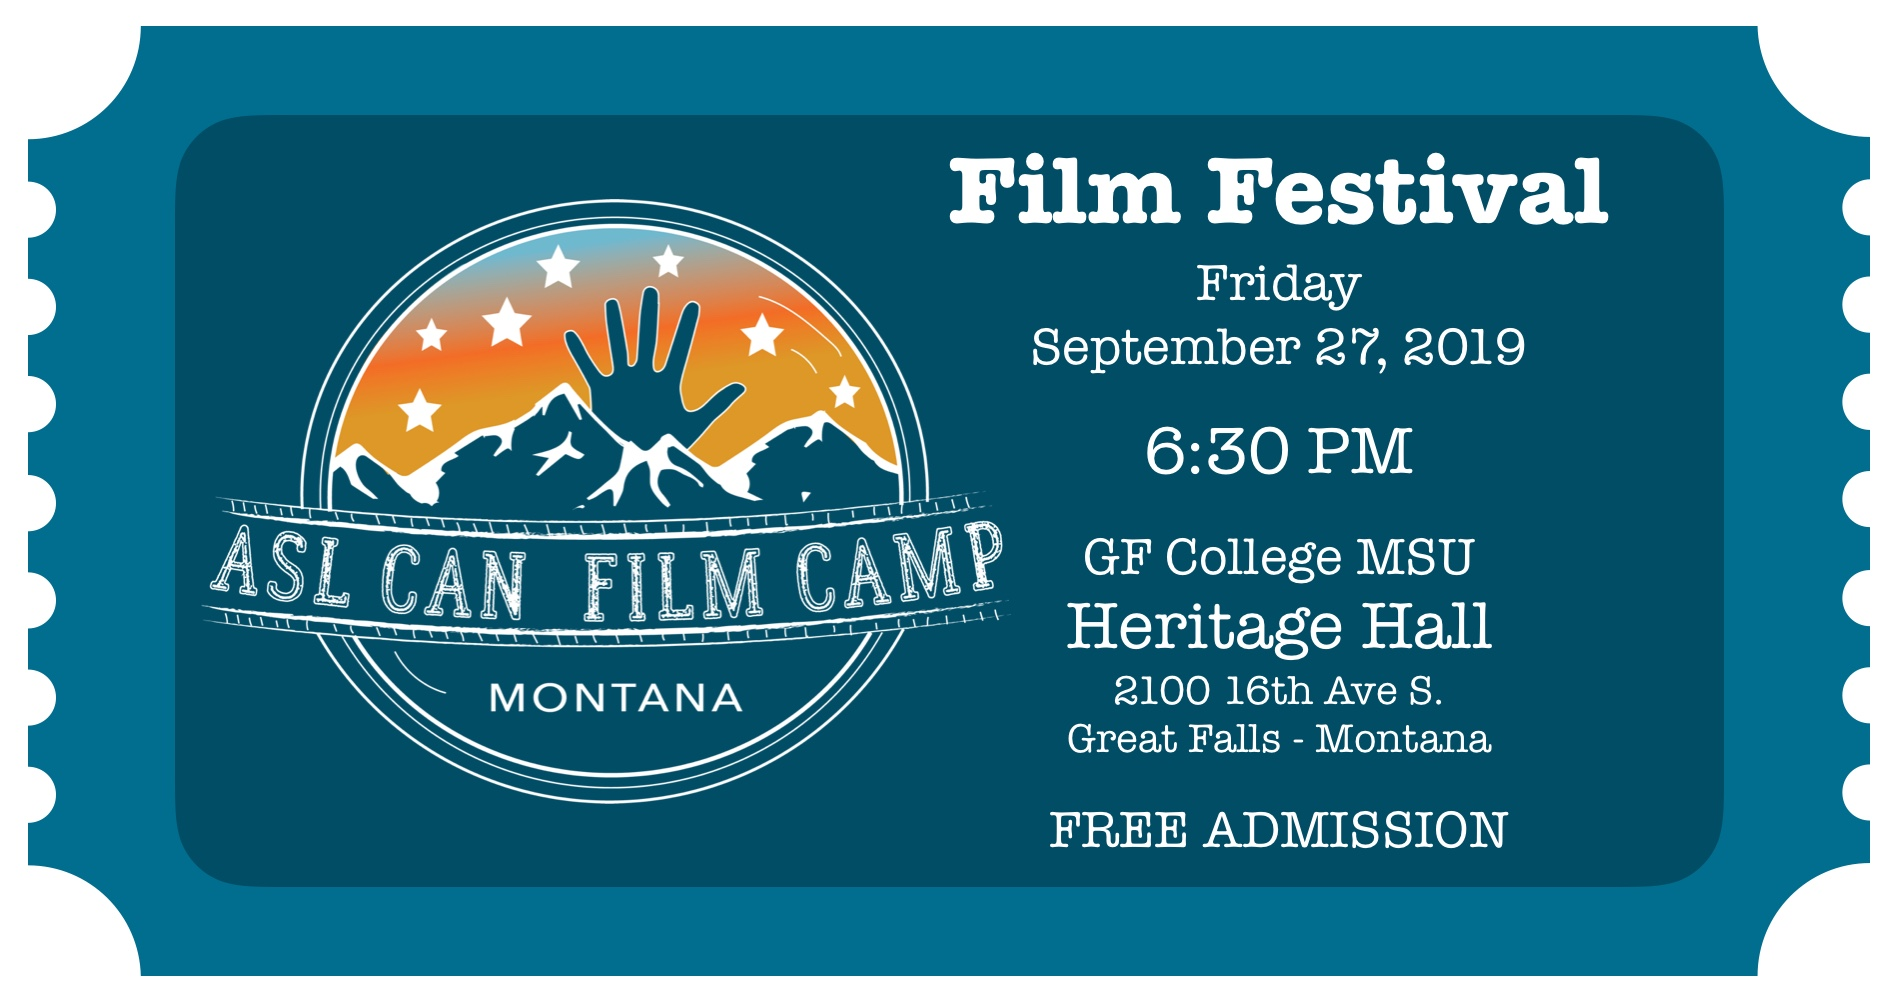 Film Festival! @ Heritage Hall - Great Falls College MSU